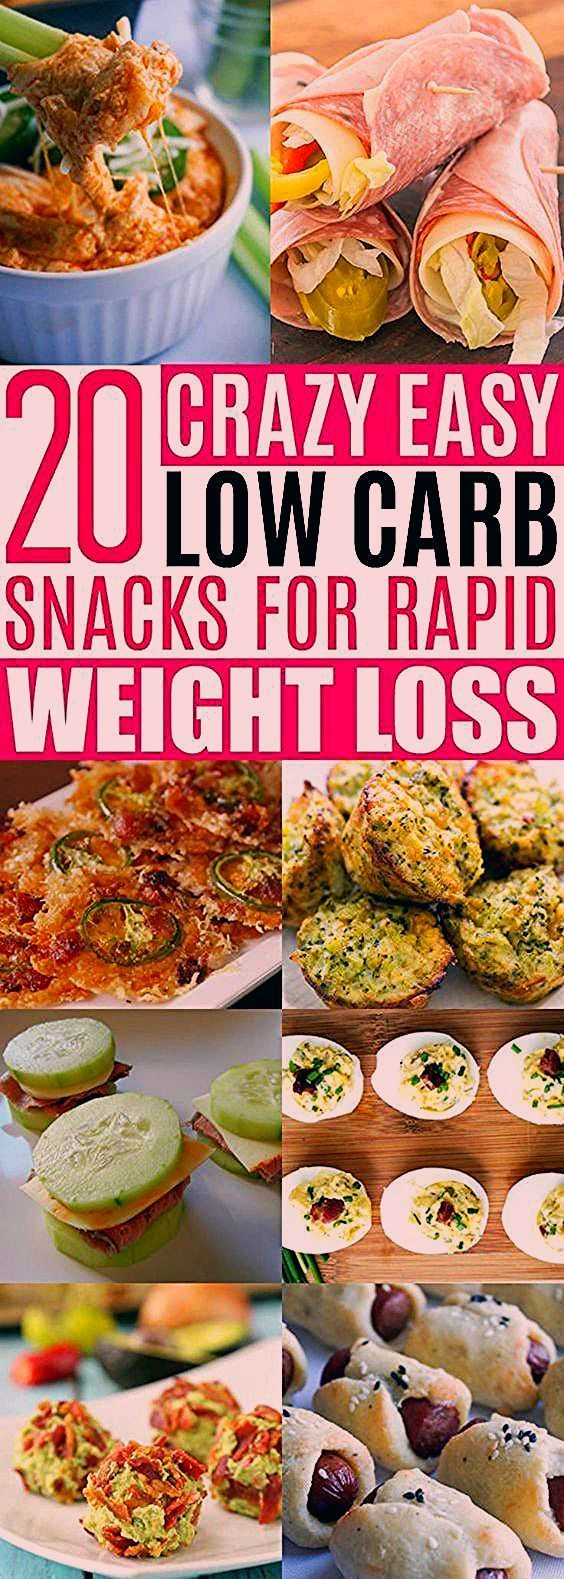 So glad I found these low carb snack ideas for my ketogenic diet Now I have so many keto snacks for weight loss